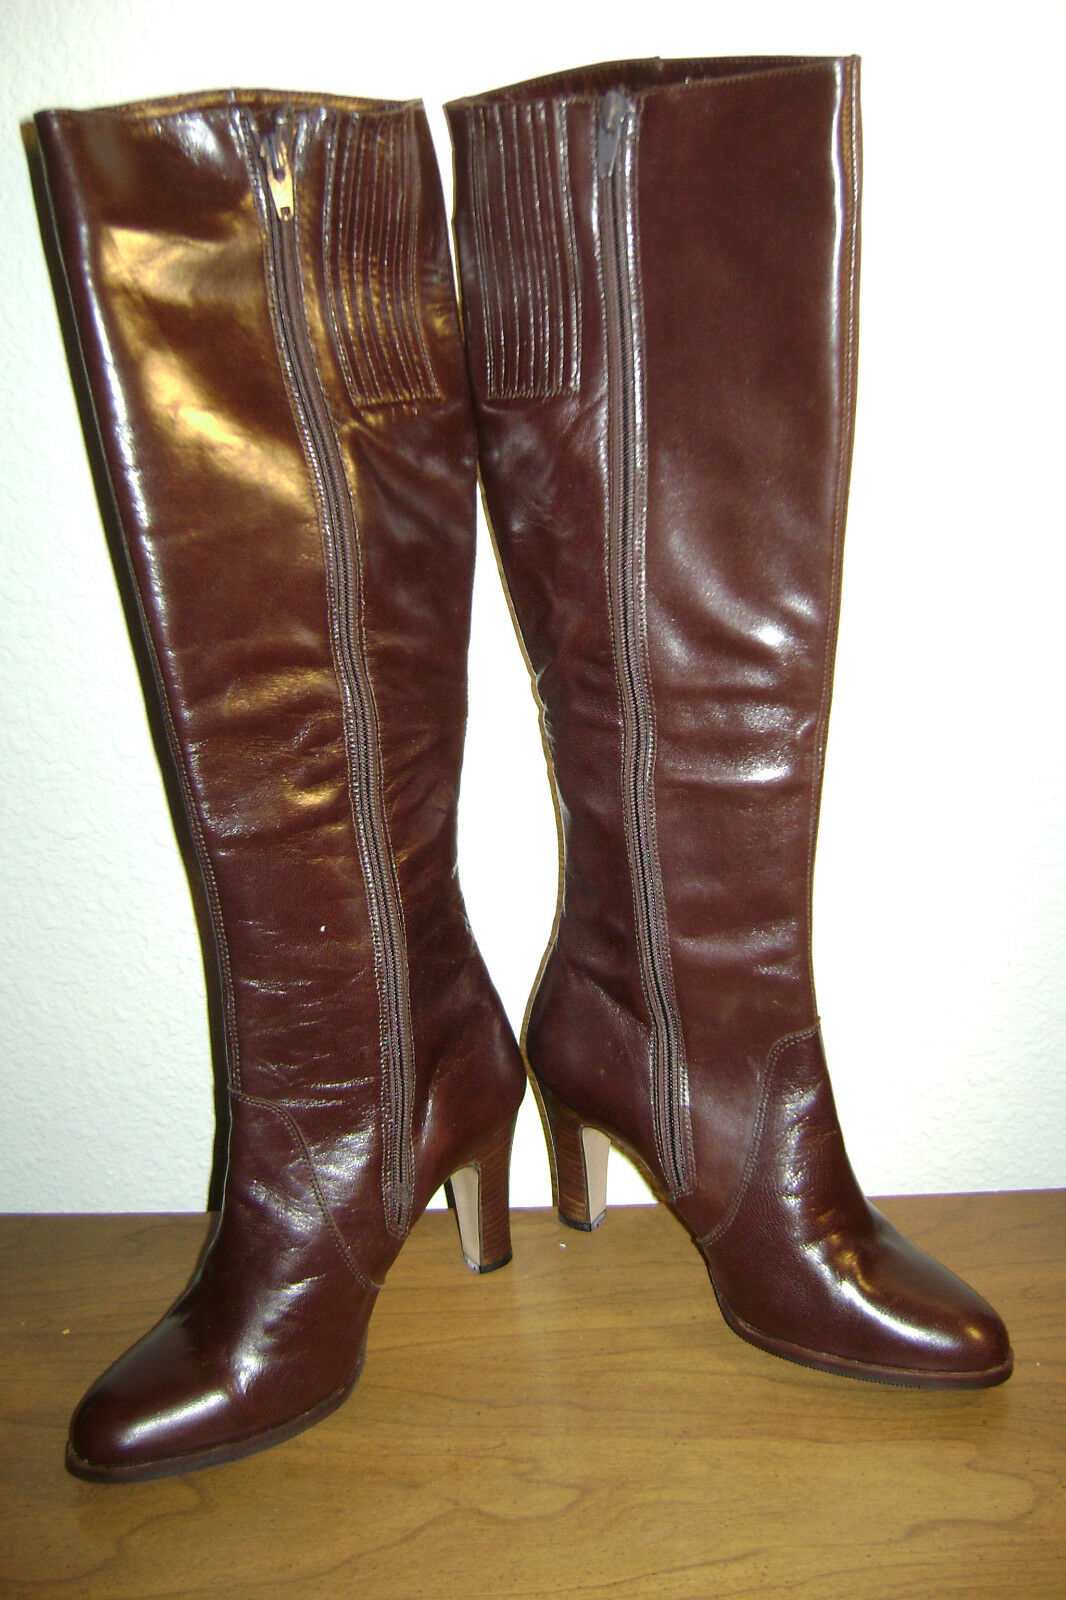 DARK BROWN LEATHER KNEE HIGH BOOTS, NEW IN BOX, SIZE 6 M